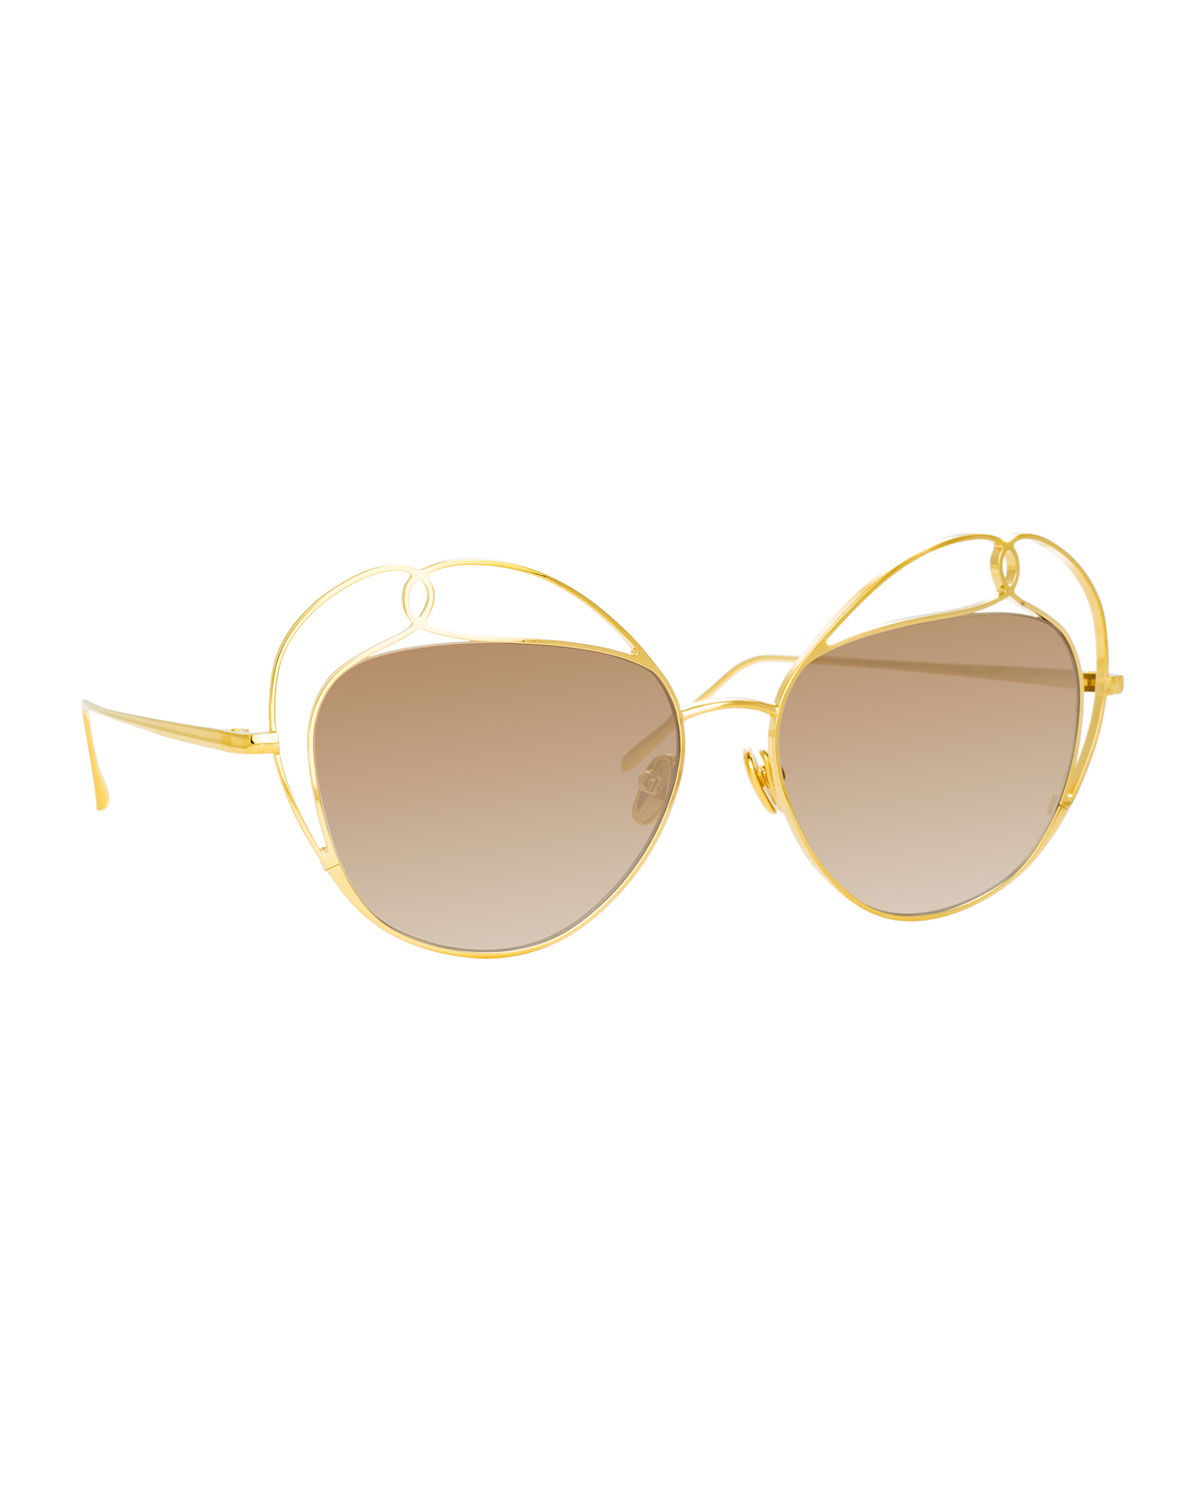 Linda Farrow Sunglasses CUTOUT AVIATOR SUNGLASSES